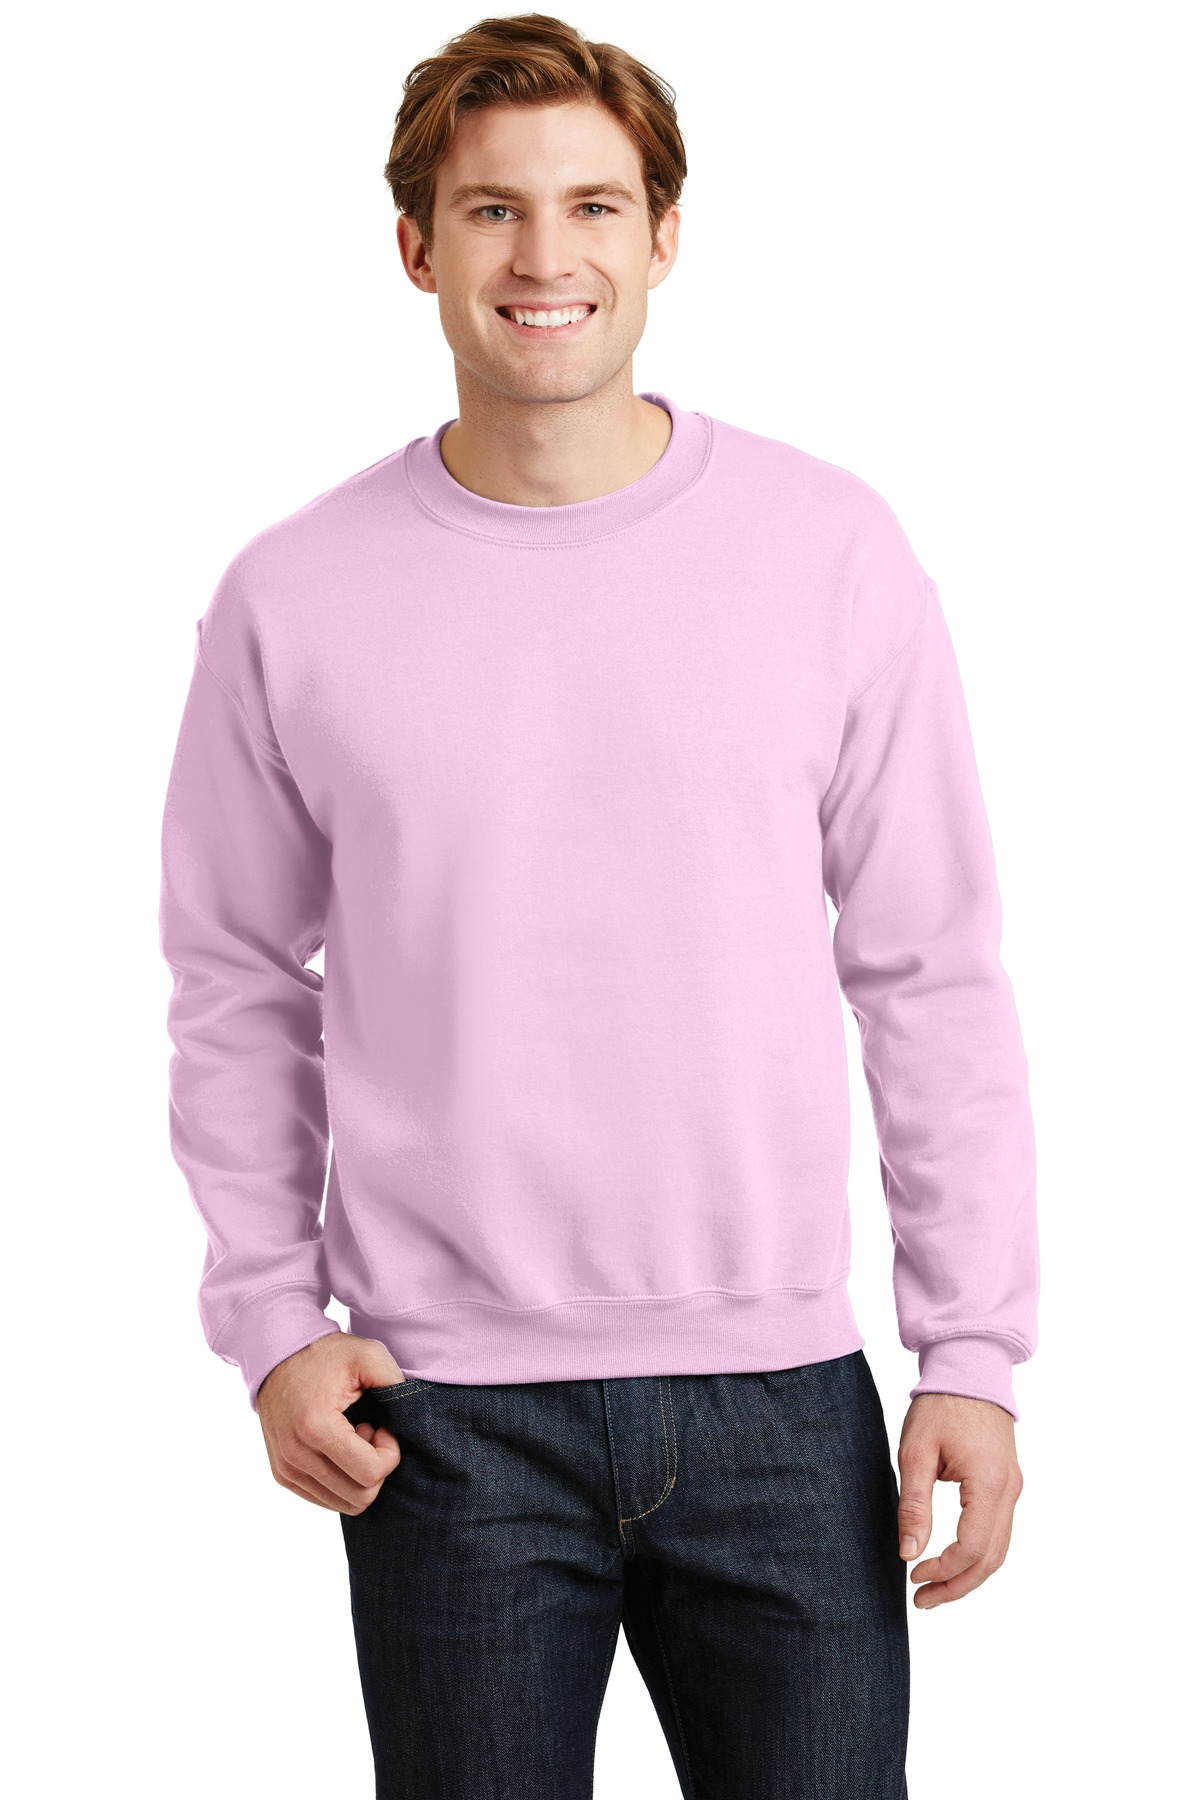 Gildan ®  - Heavy Blend™ Crewneck Sweatshirt.  18000 - Light Pink